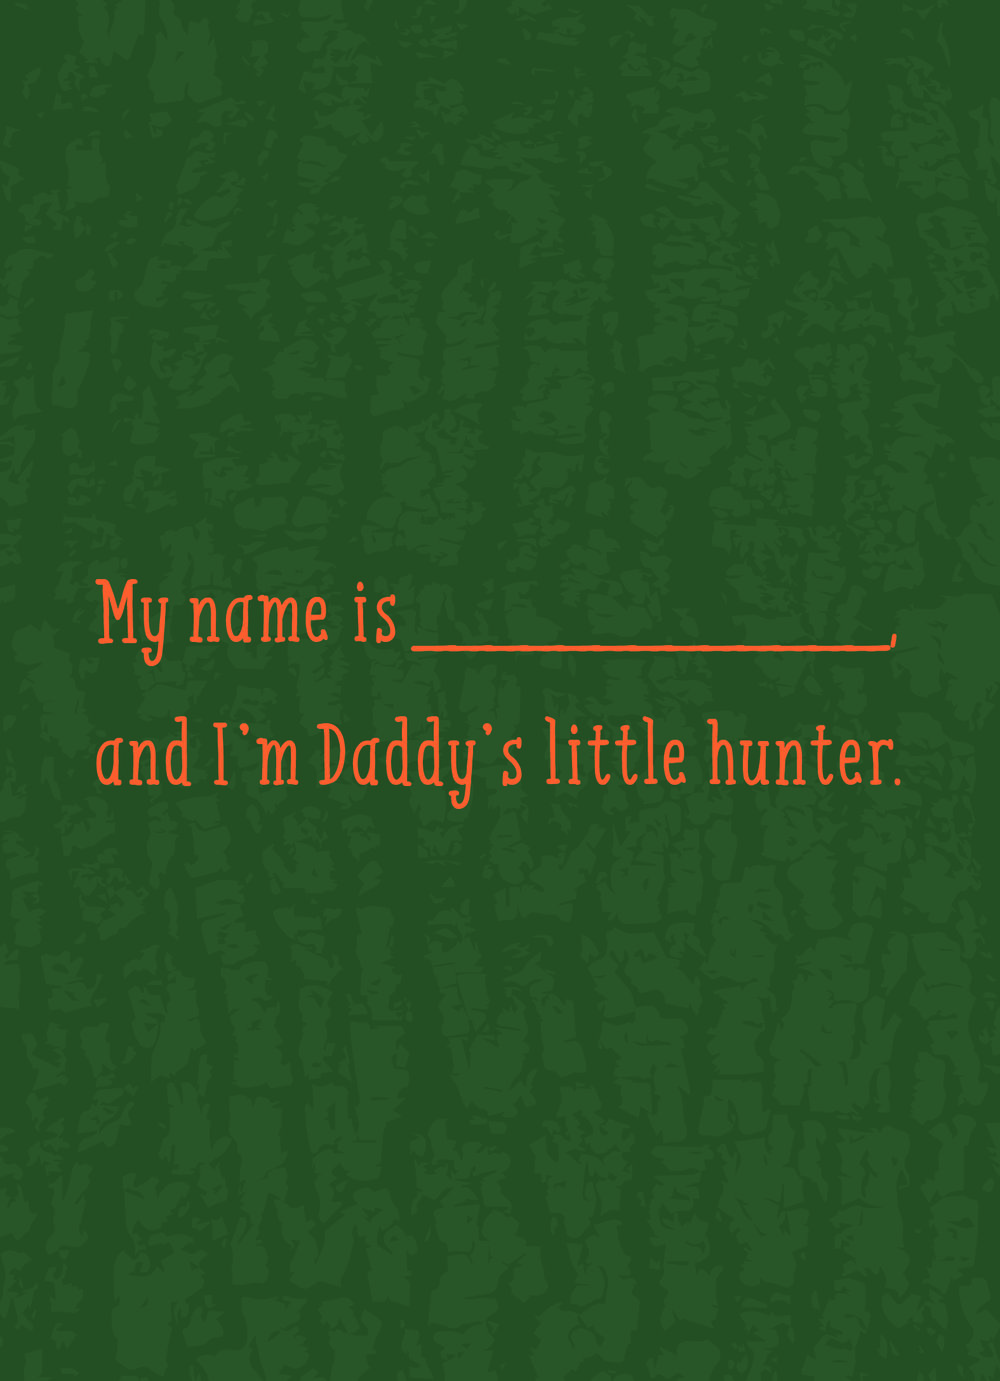 Daddy's Little Hunter-CMYK_Page 2.jpg